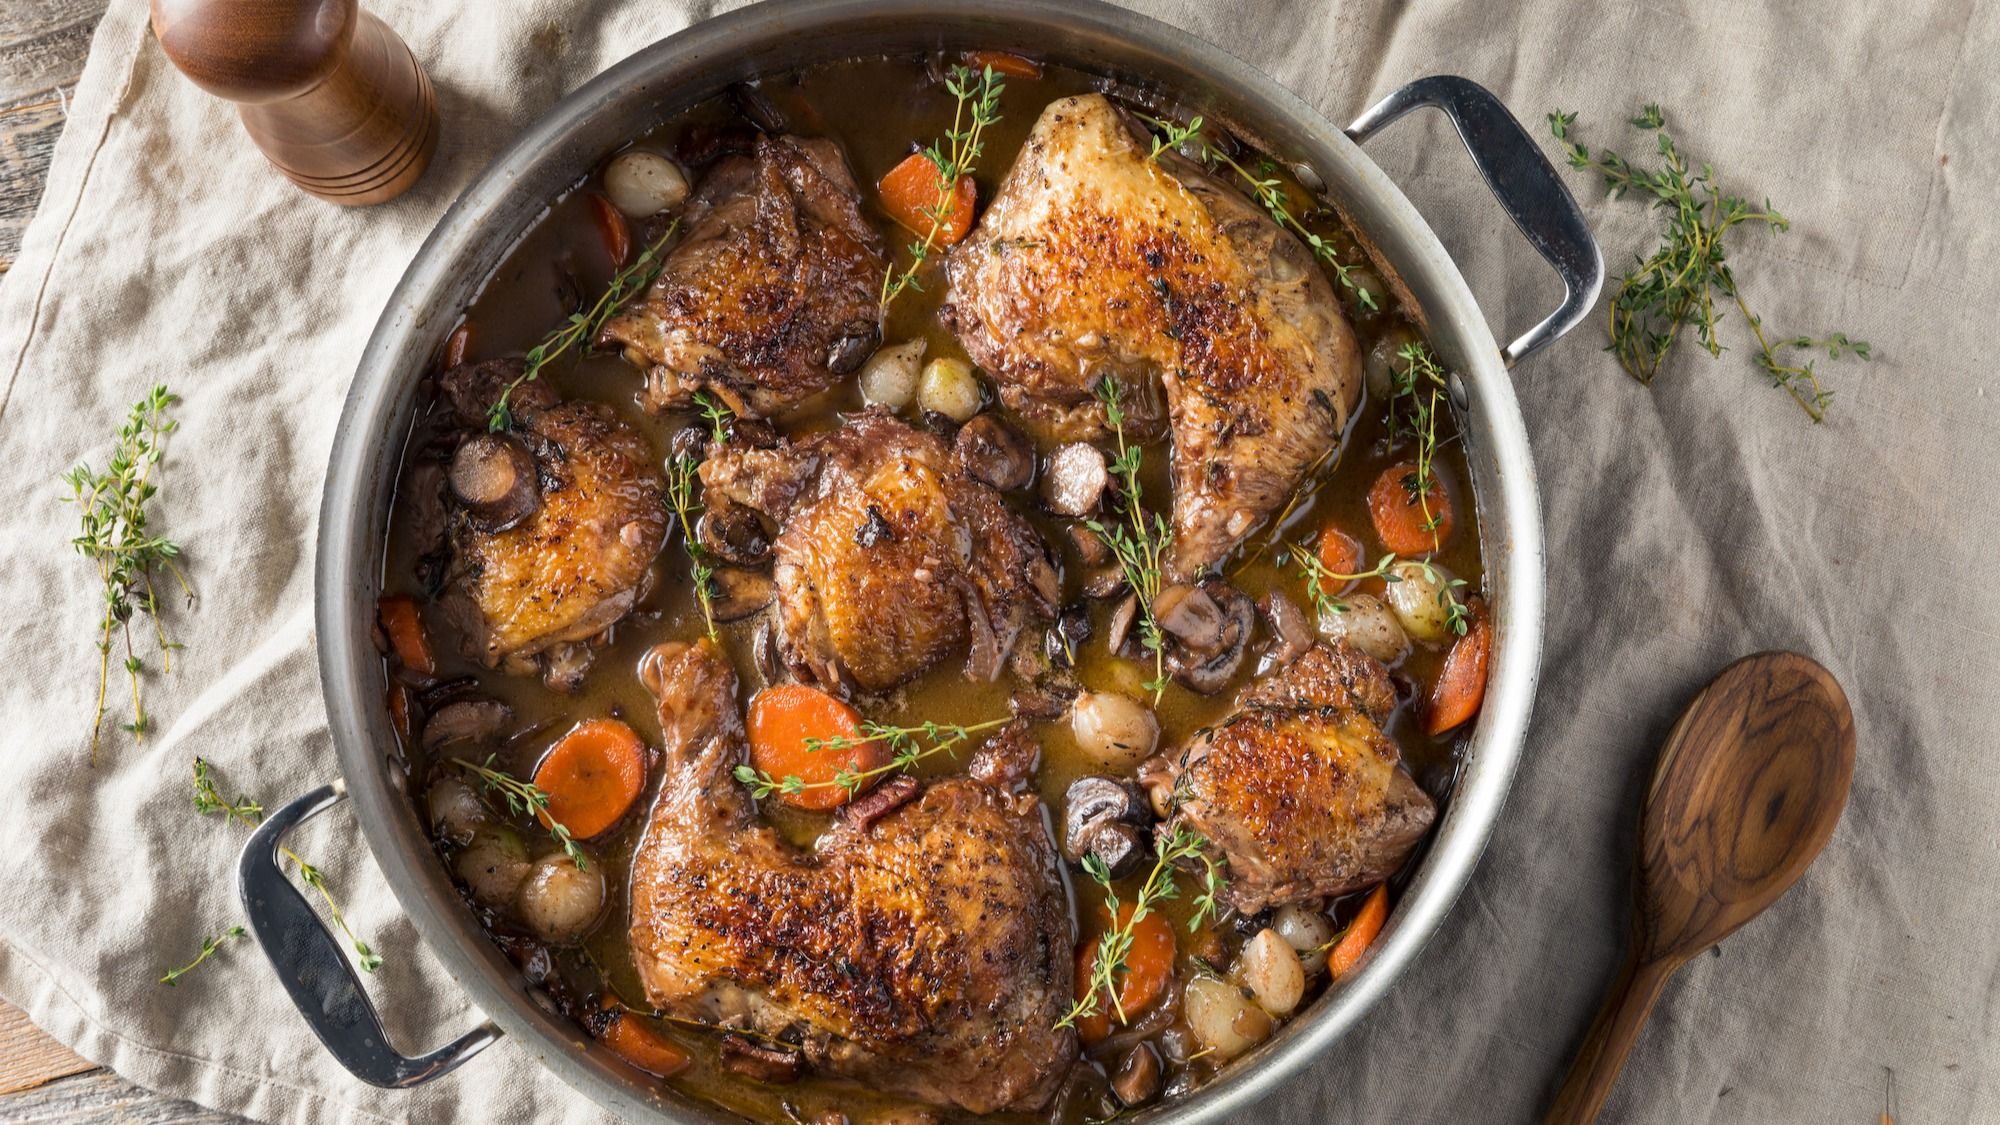 Coq Au Vin with brandy and red wine